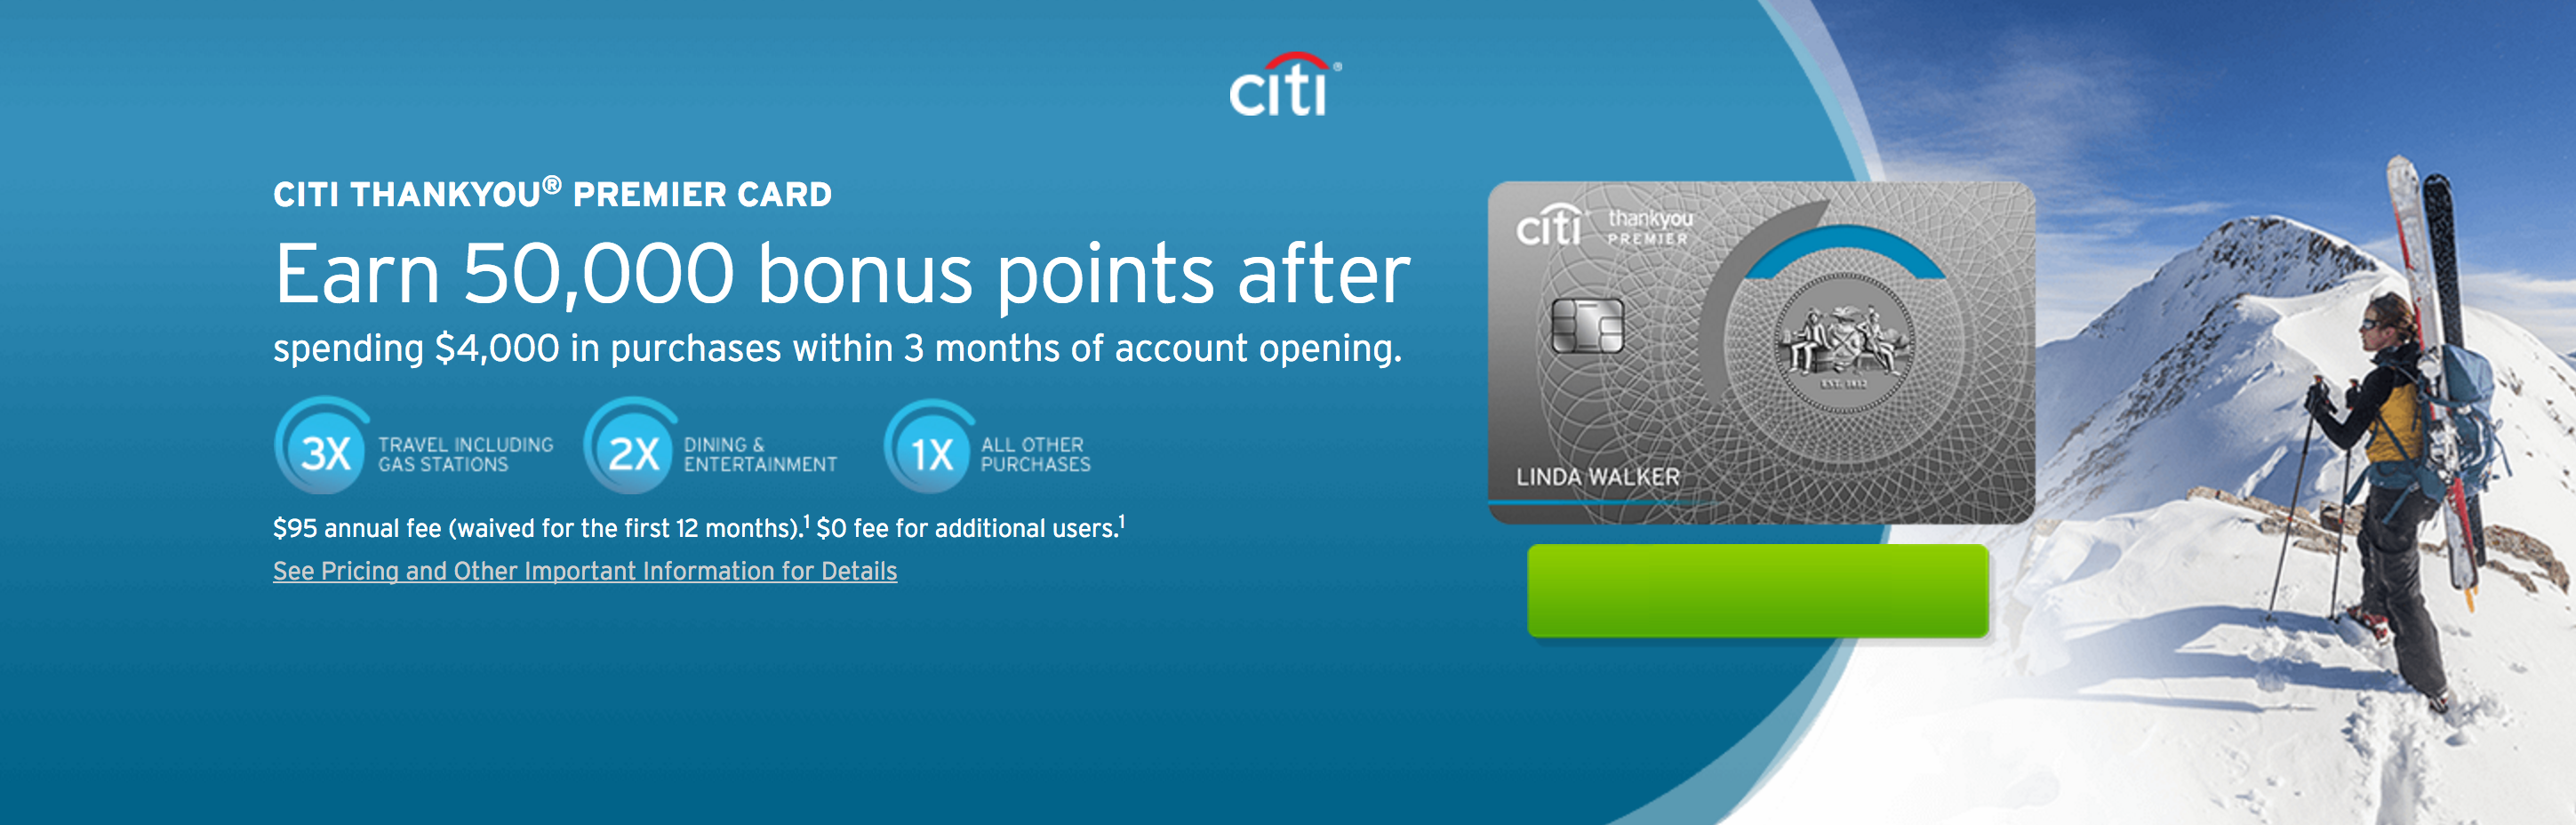 get 50000 points with the citi thankyou premier card